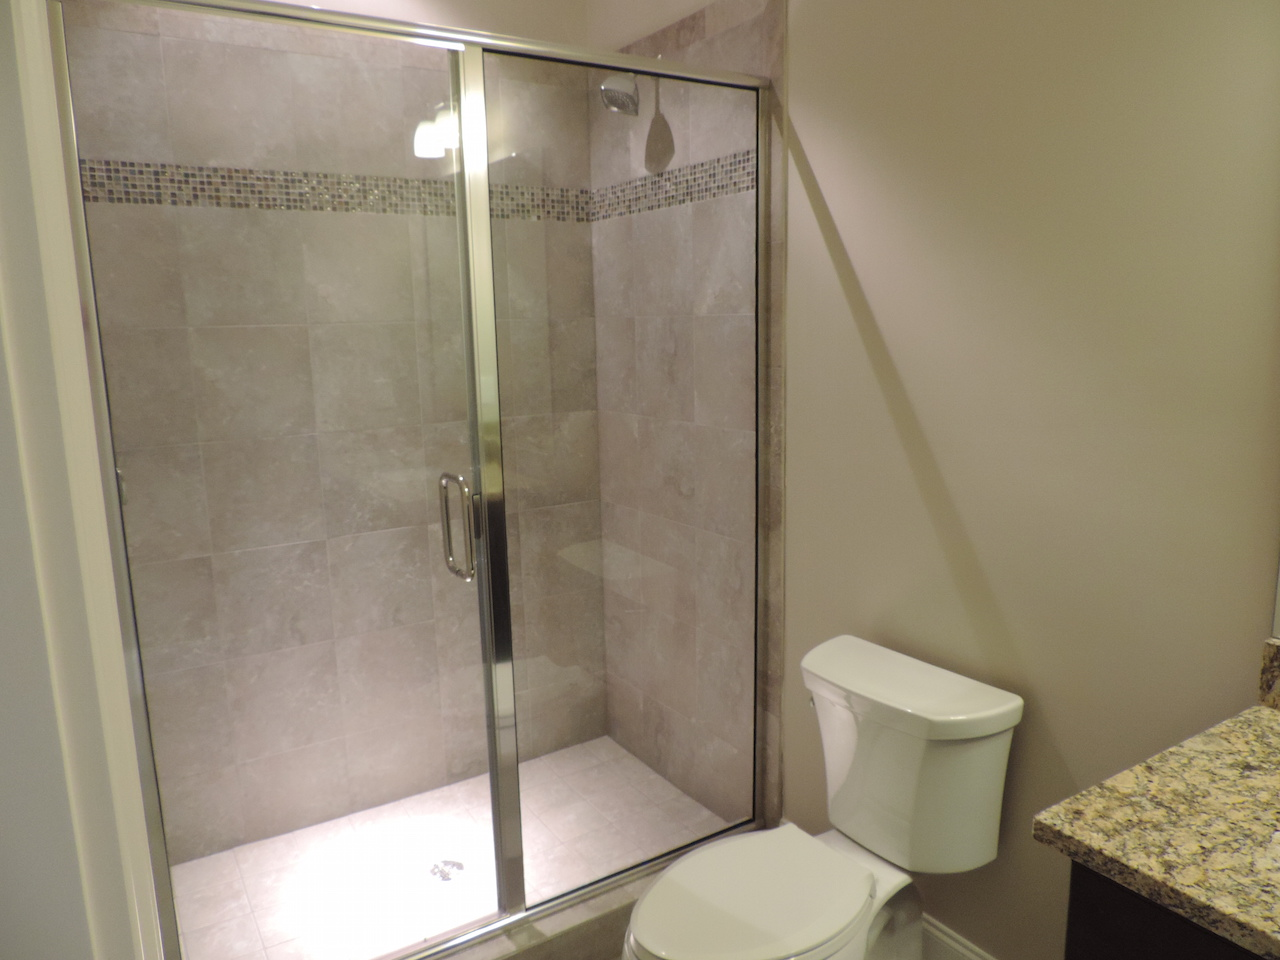 Semi-Frameless Shower Example45